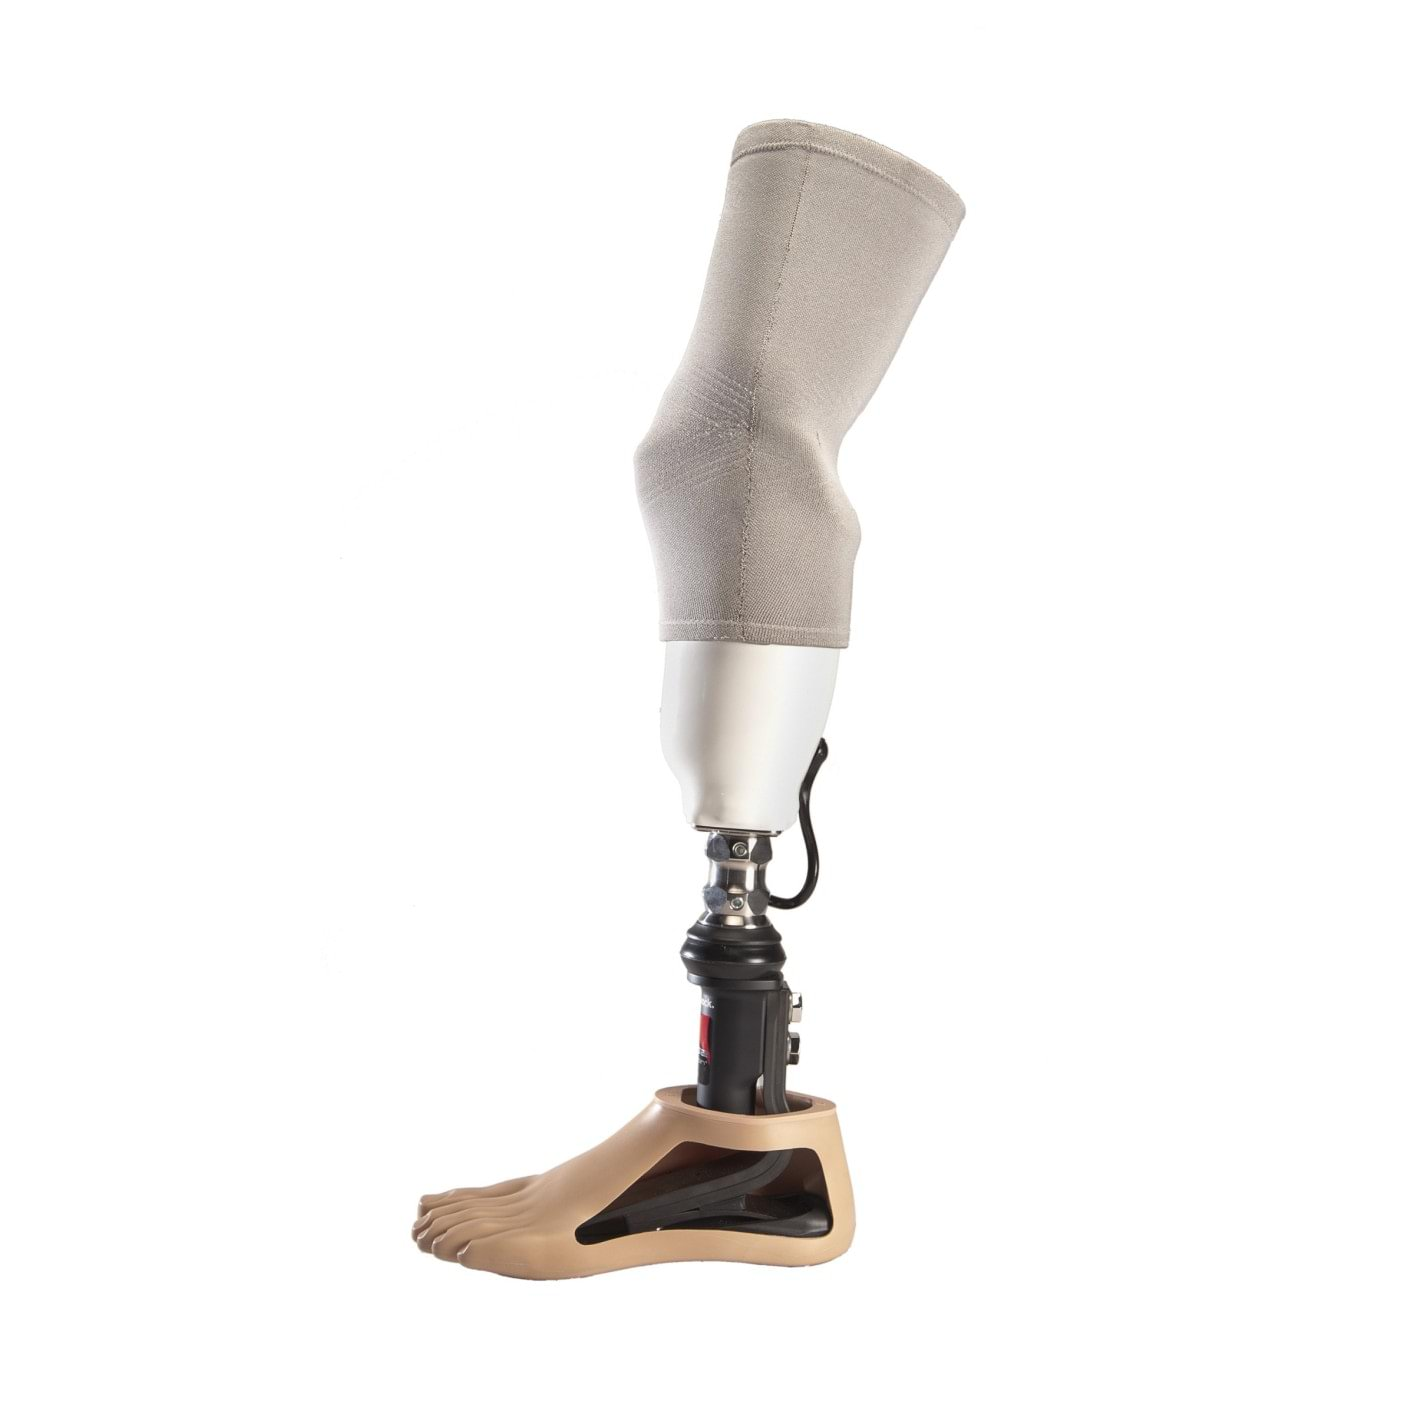 feet prothesis Freedom innovations develops state-of-the-art prosthetic feet and knees to  deliver a portfolio of world-class lower limb prosthetic solutions.